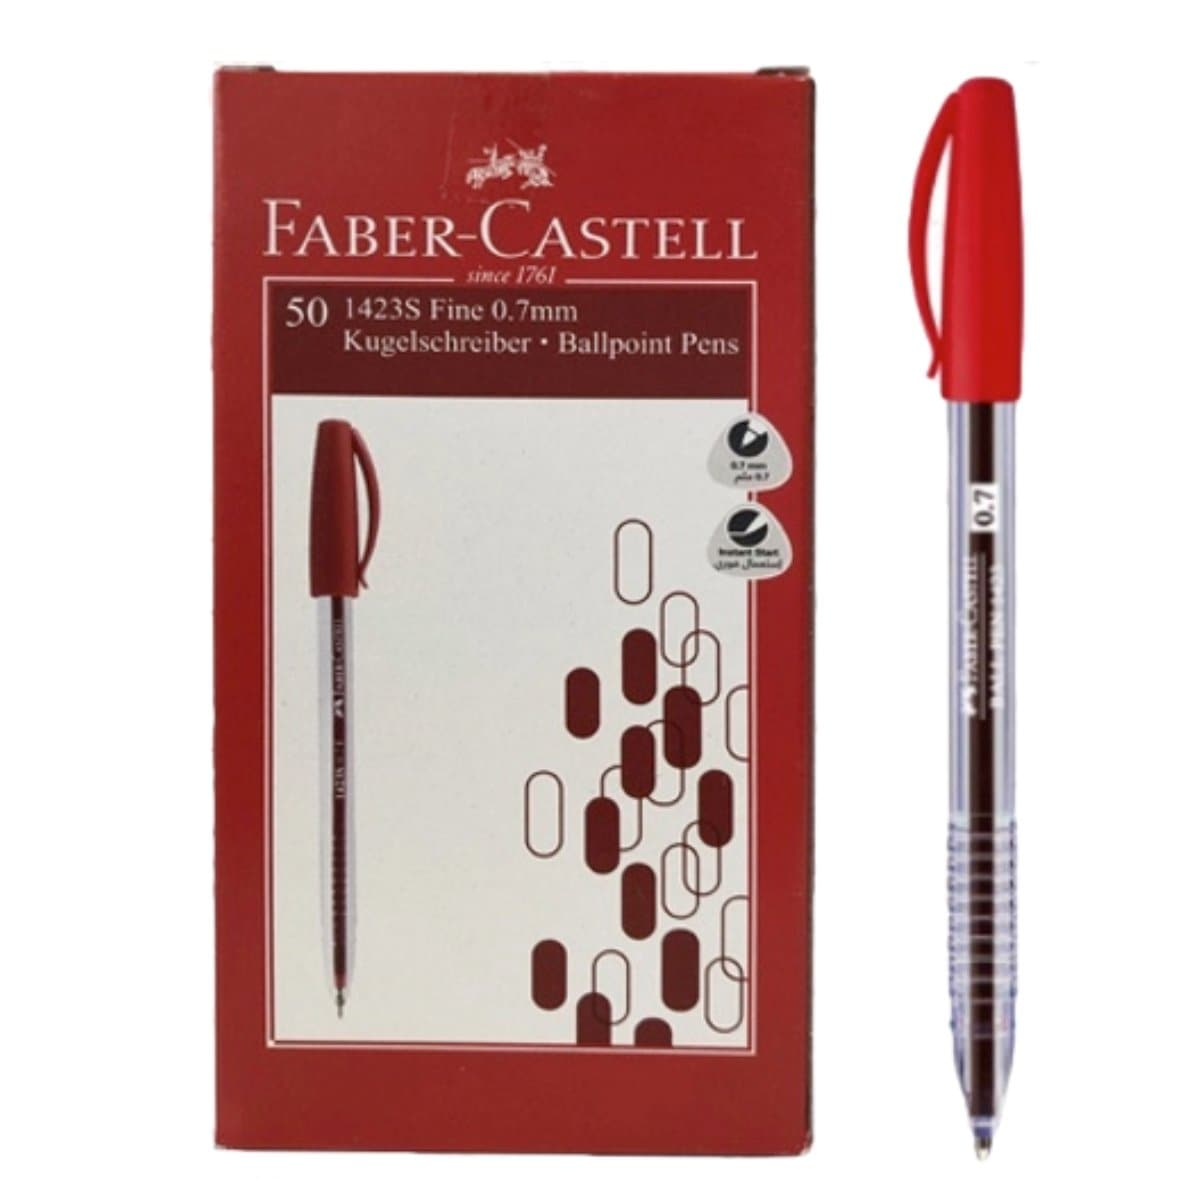 Faber Castell Ballpen 1423, 0.7mm, 50/box, Red